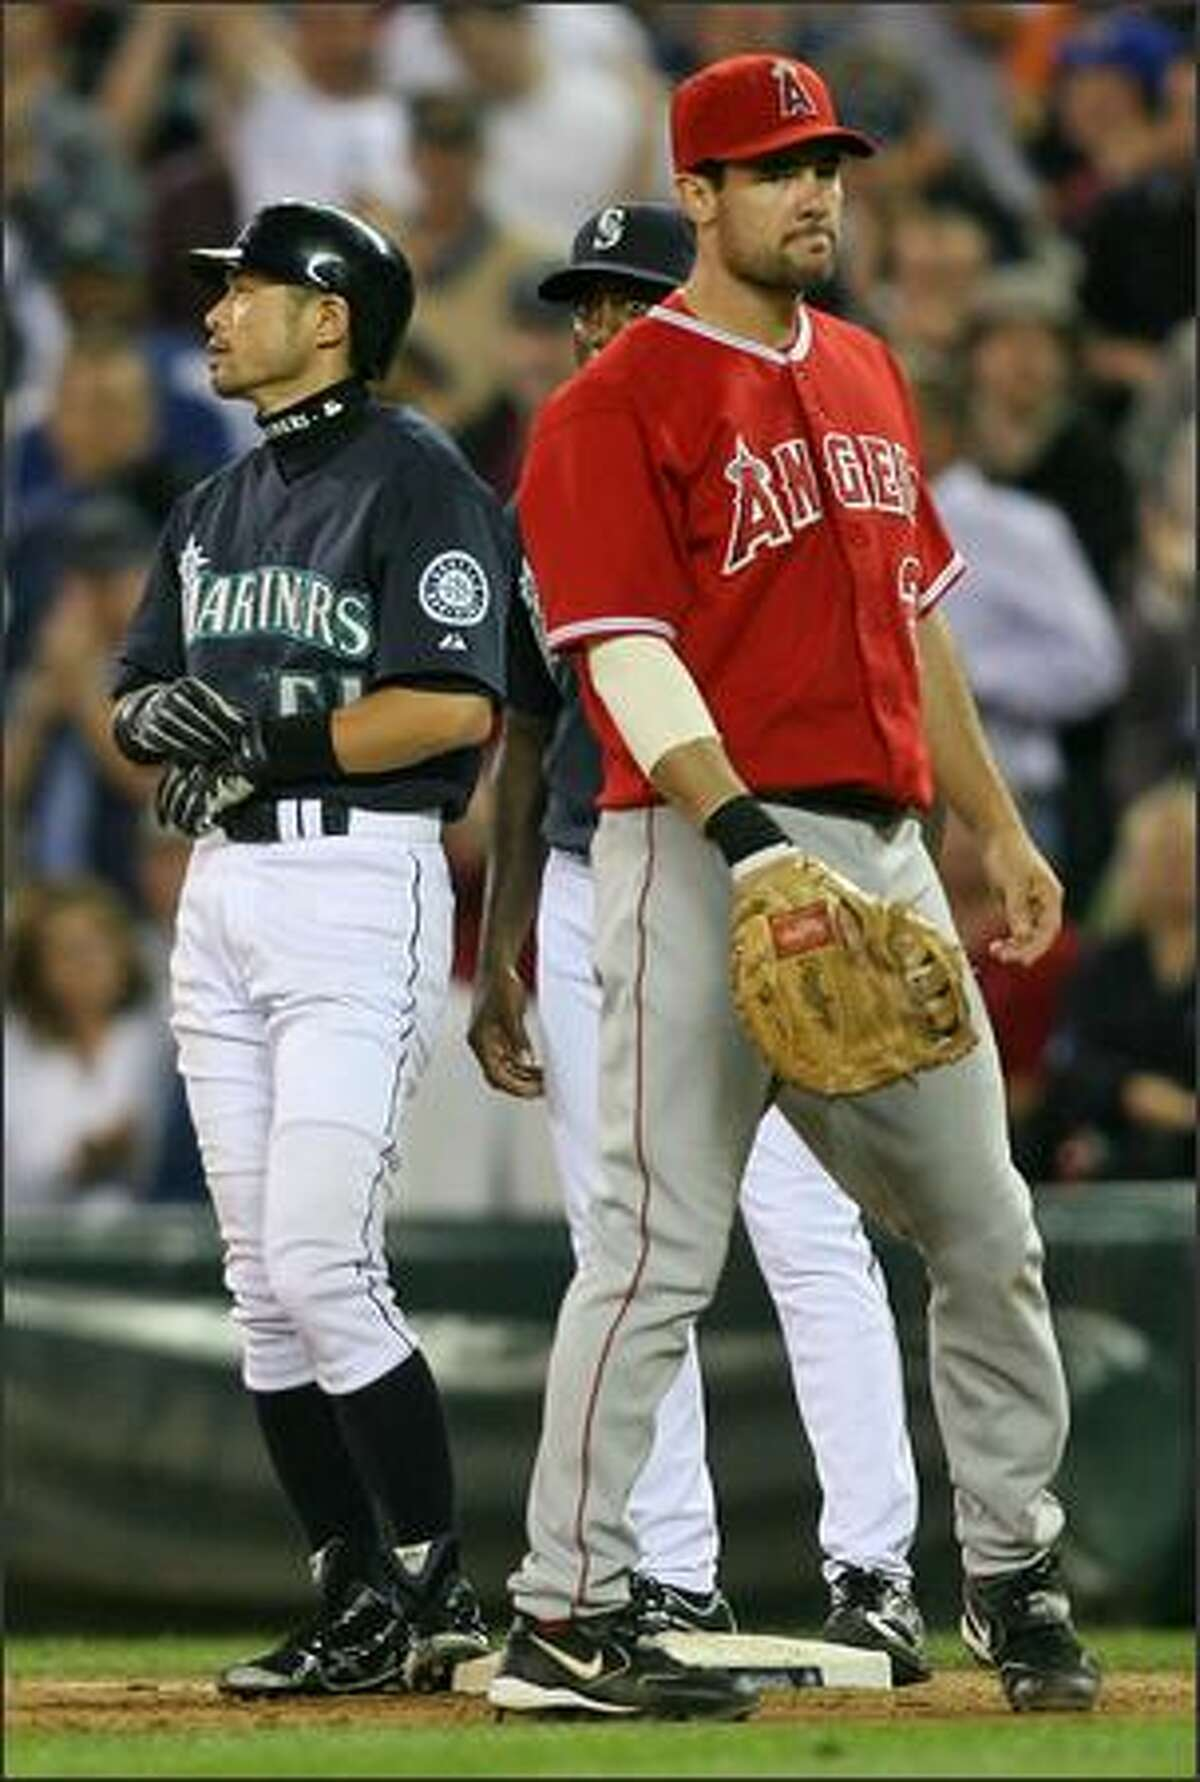 Los Angeles Angels Casey Kotchman digs in at first after missing a ground ball off of Seattle Mariners Ichiro Suzuki during seventh inning action at Safeco Field in Seattle, Wash., Monday July 30, 2007.